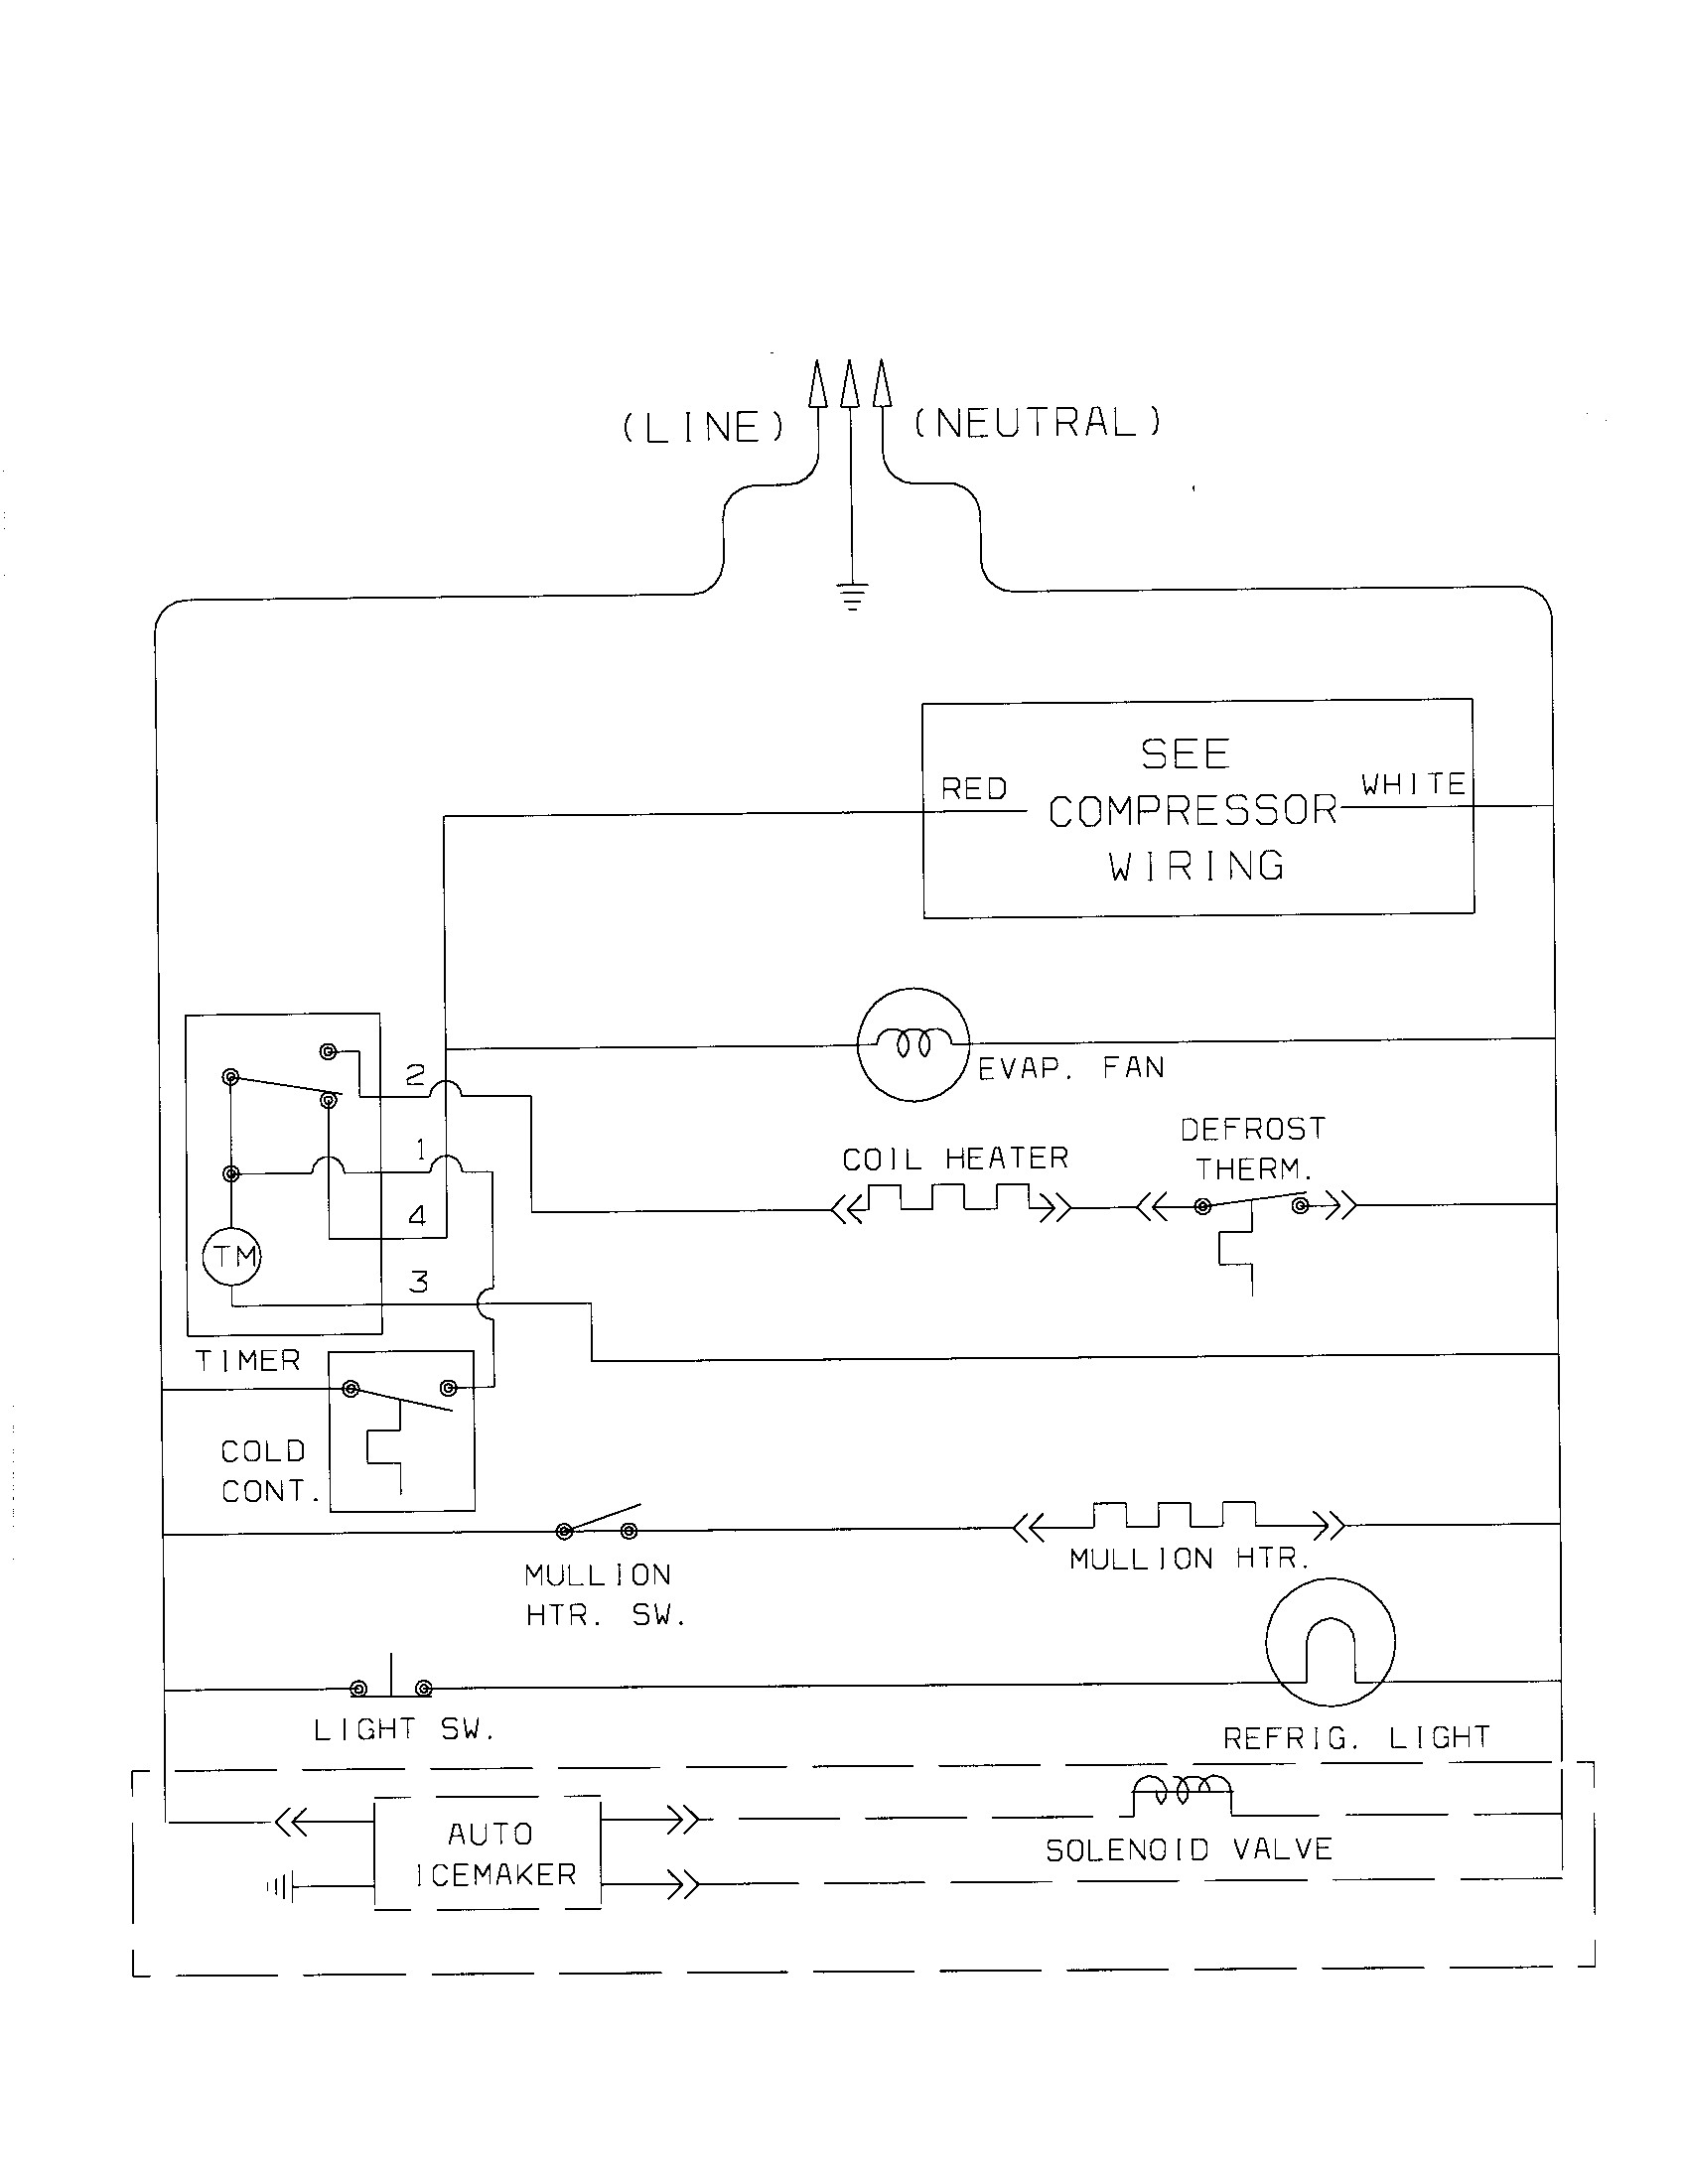 hight resolution of wiring traulsen diagrams t34904c10 wiring diagramtraulsen refrigerator wiring diagram wiring librarytraulsen wiring diagrams wire center u2022